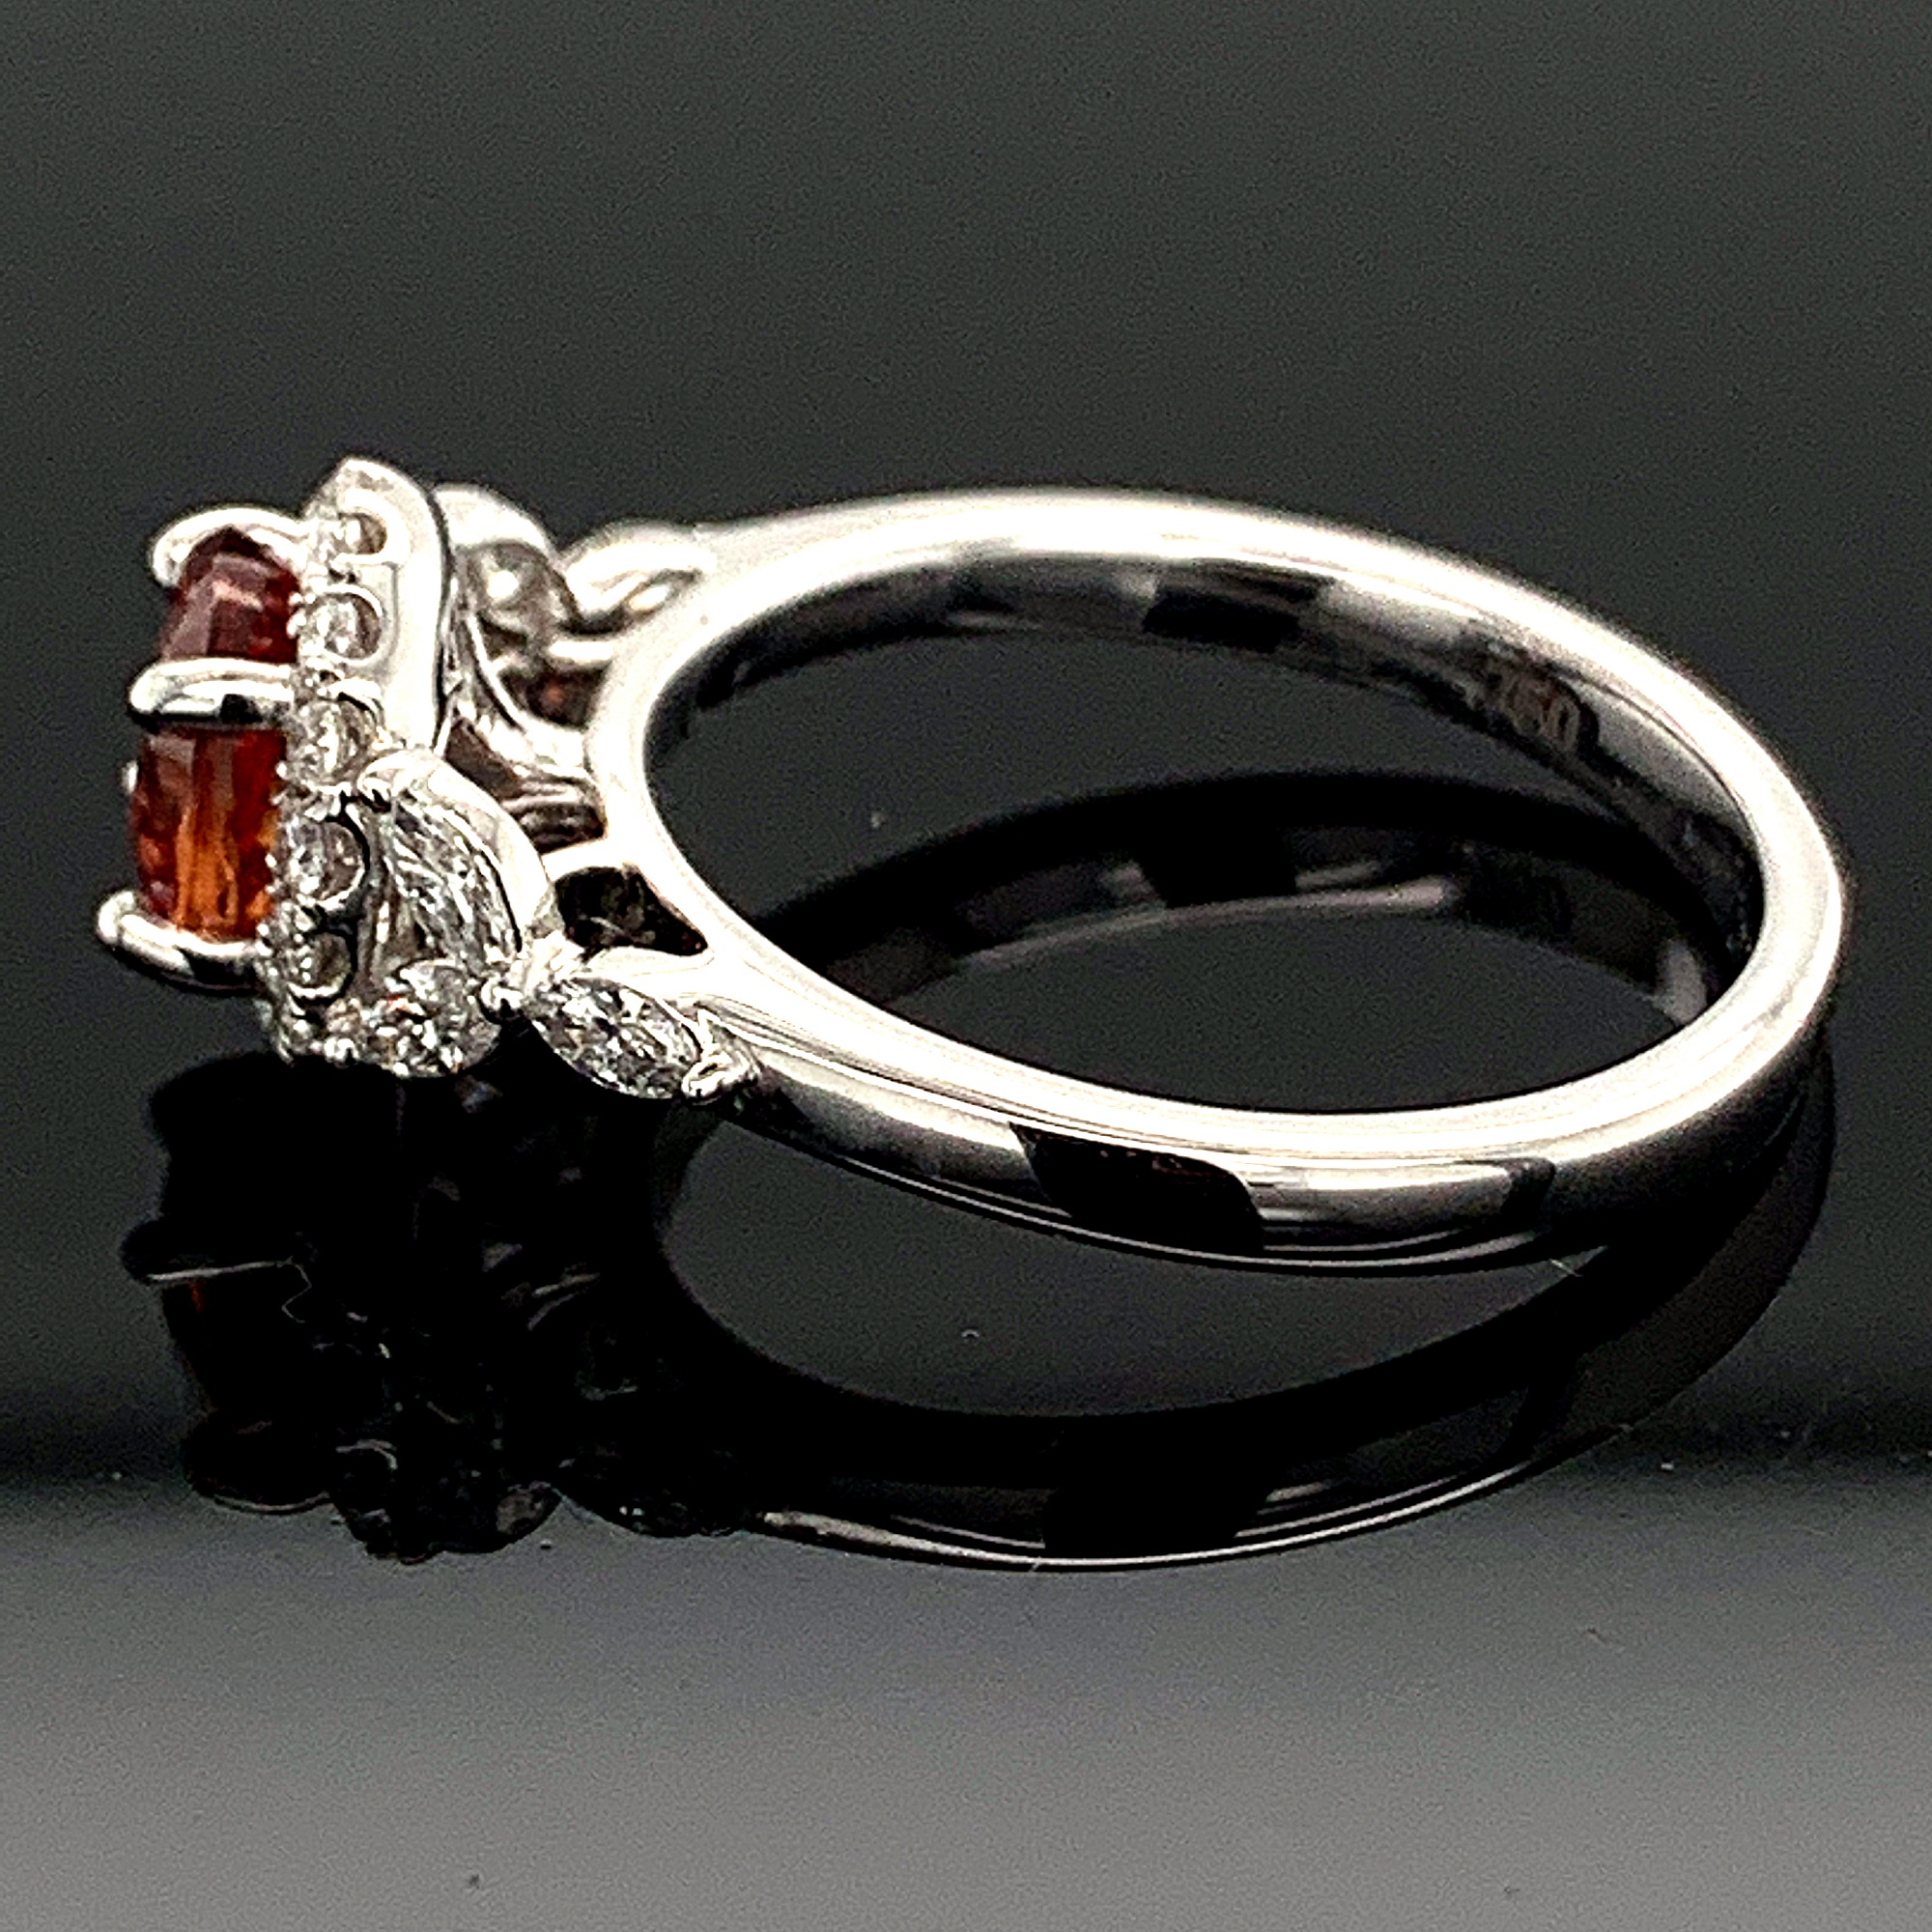 Women's Colored Stone Rings - Women's Gemstone Ring - image #3